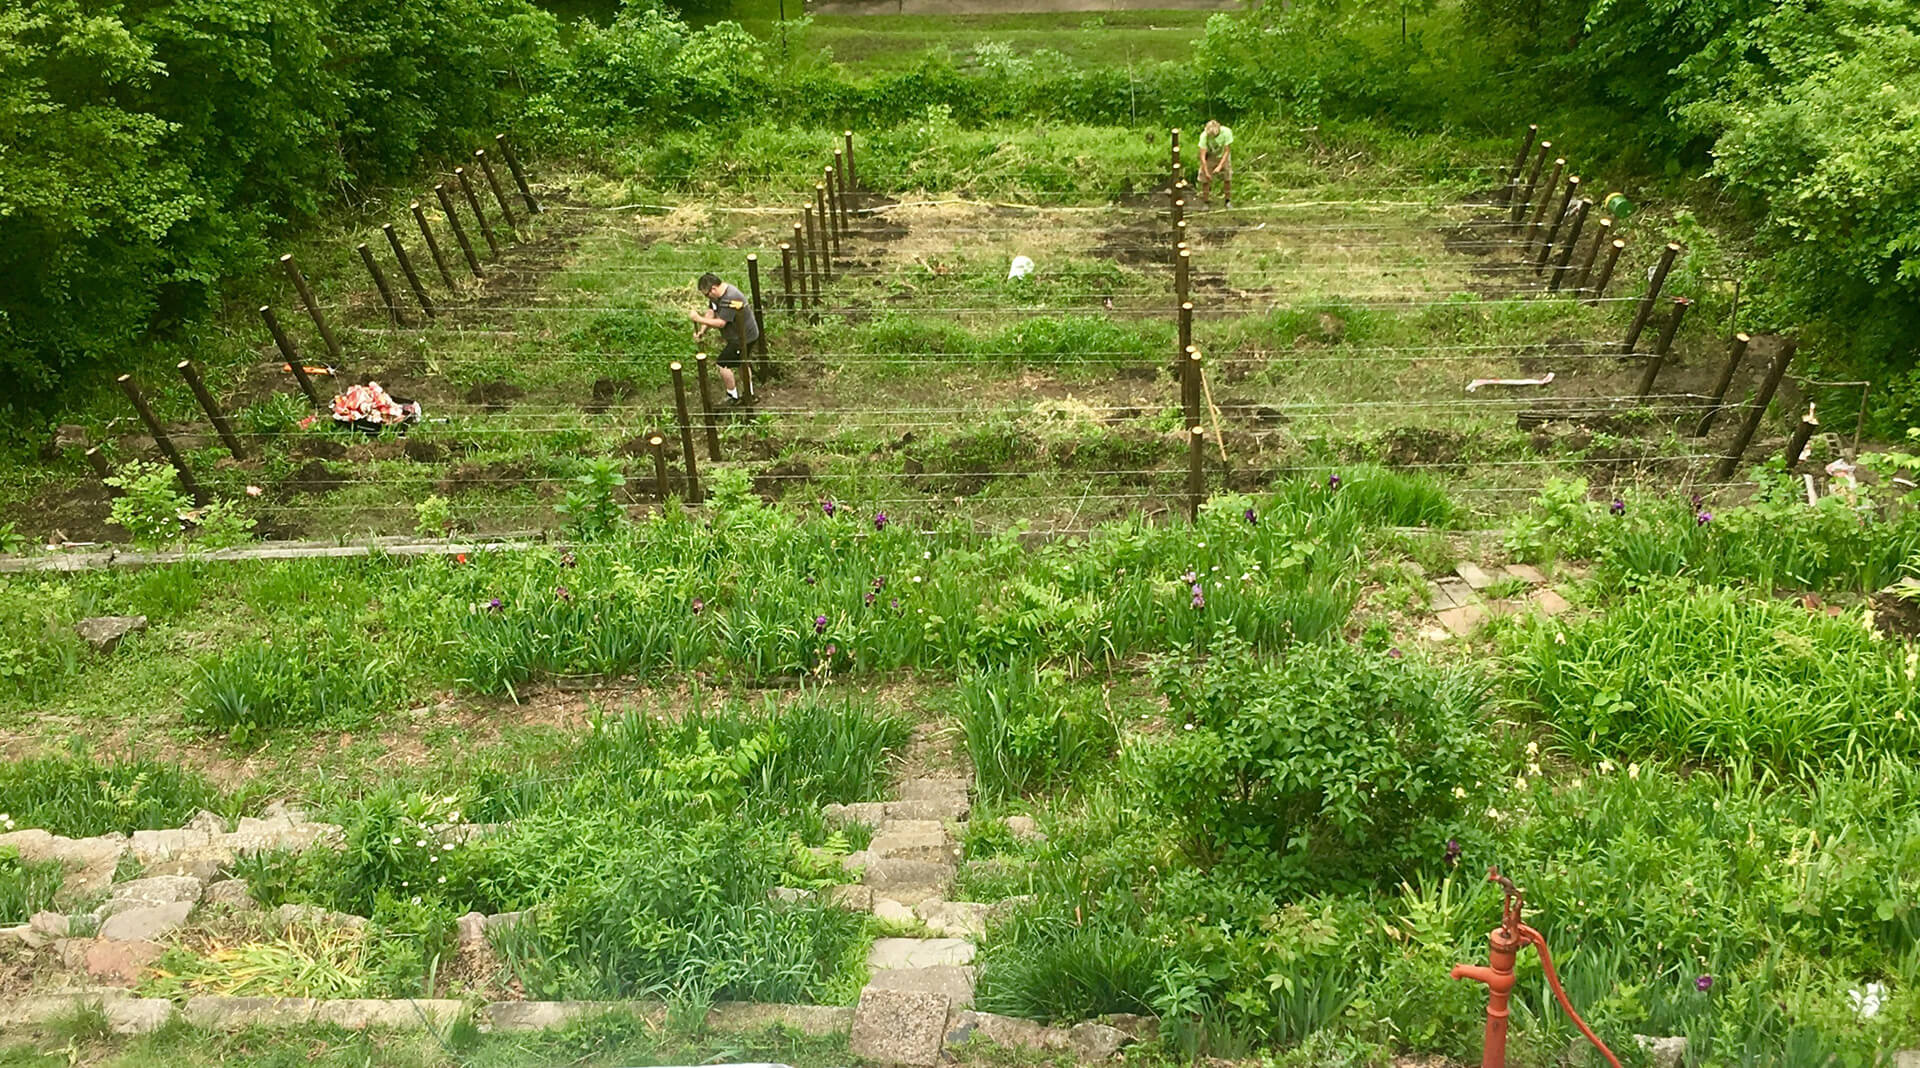 Rows being prepared for planting